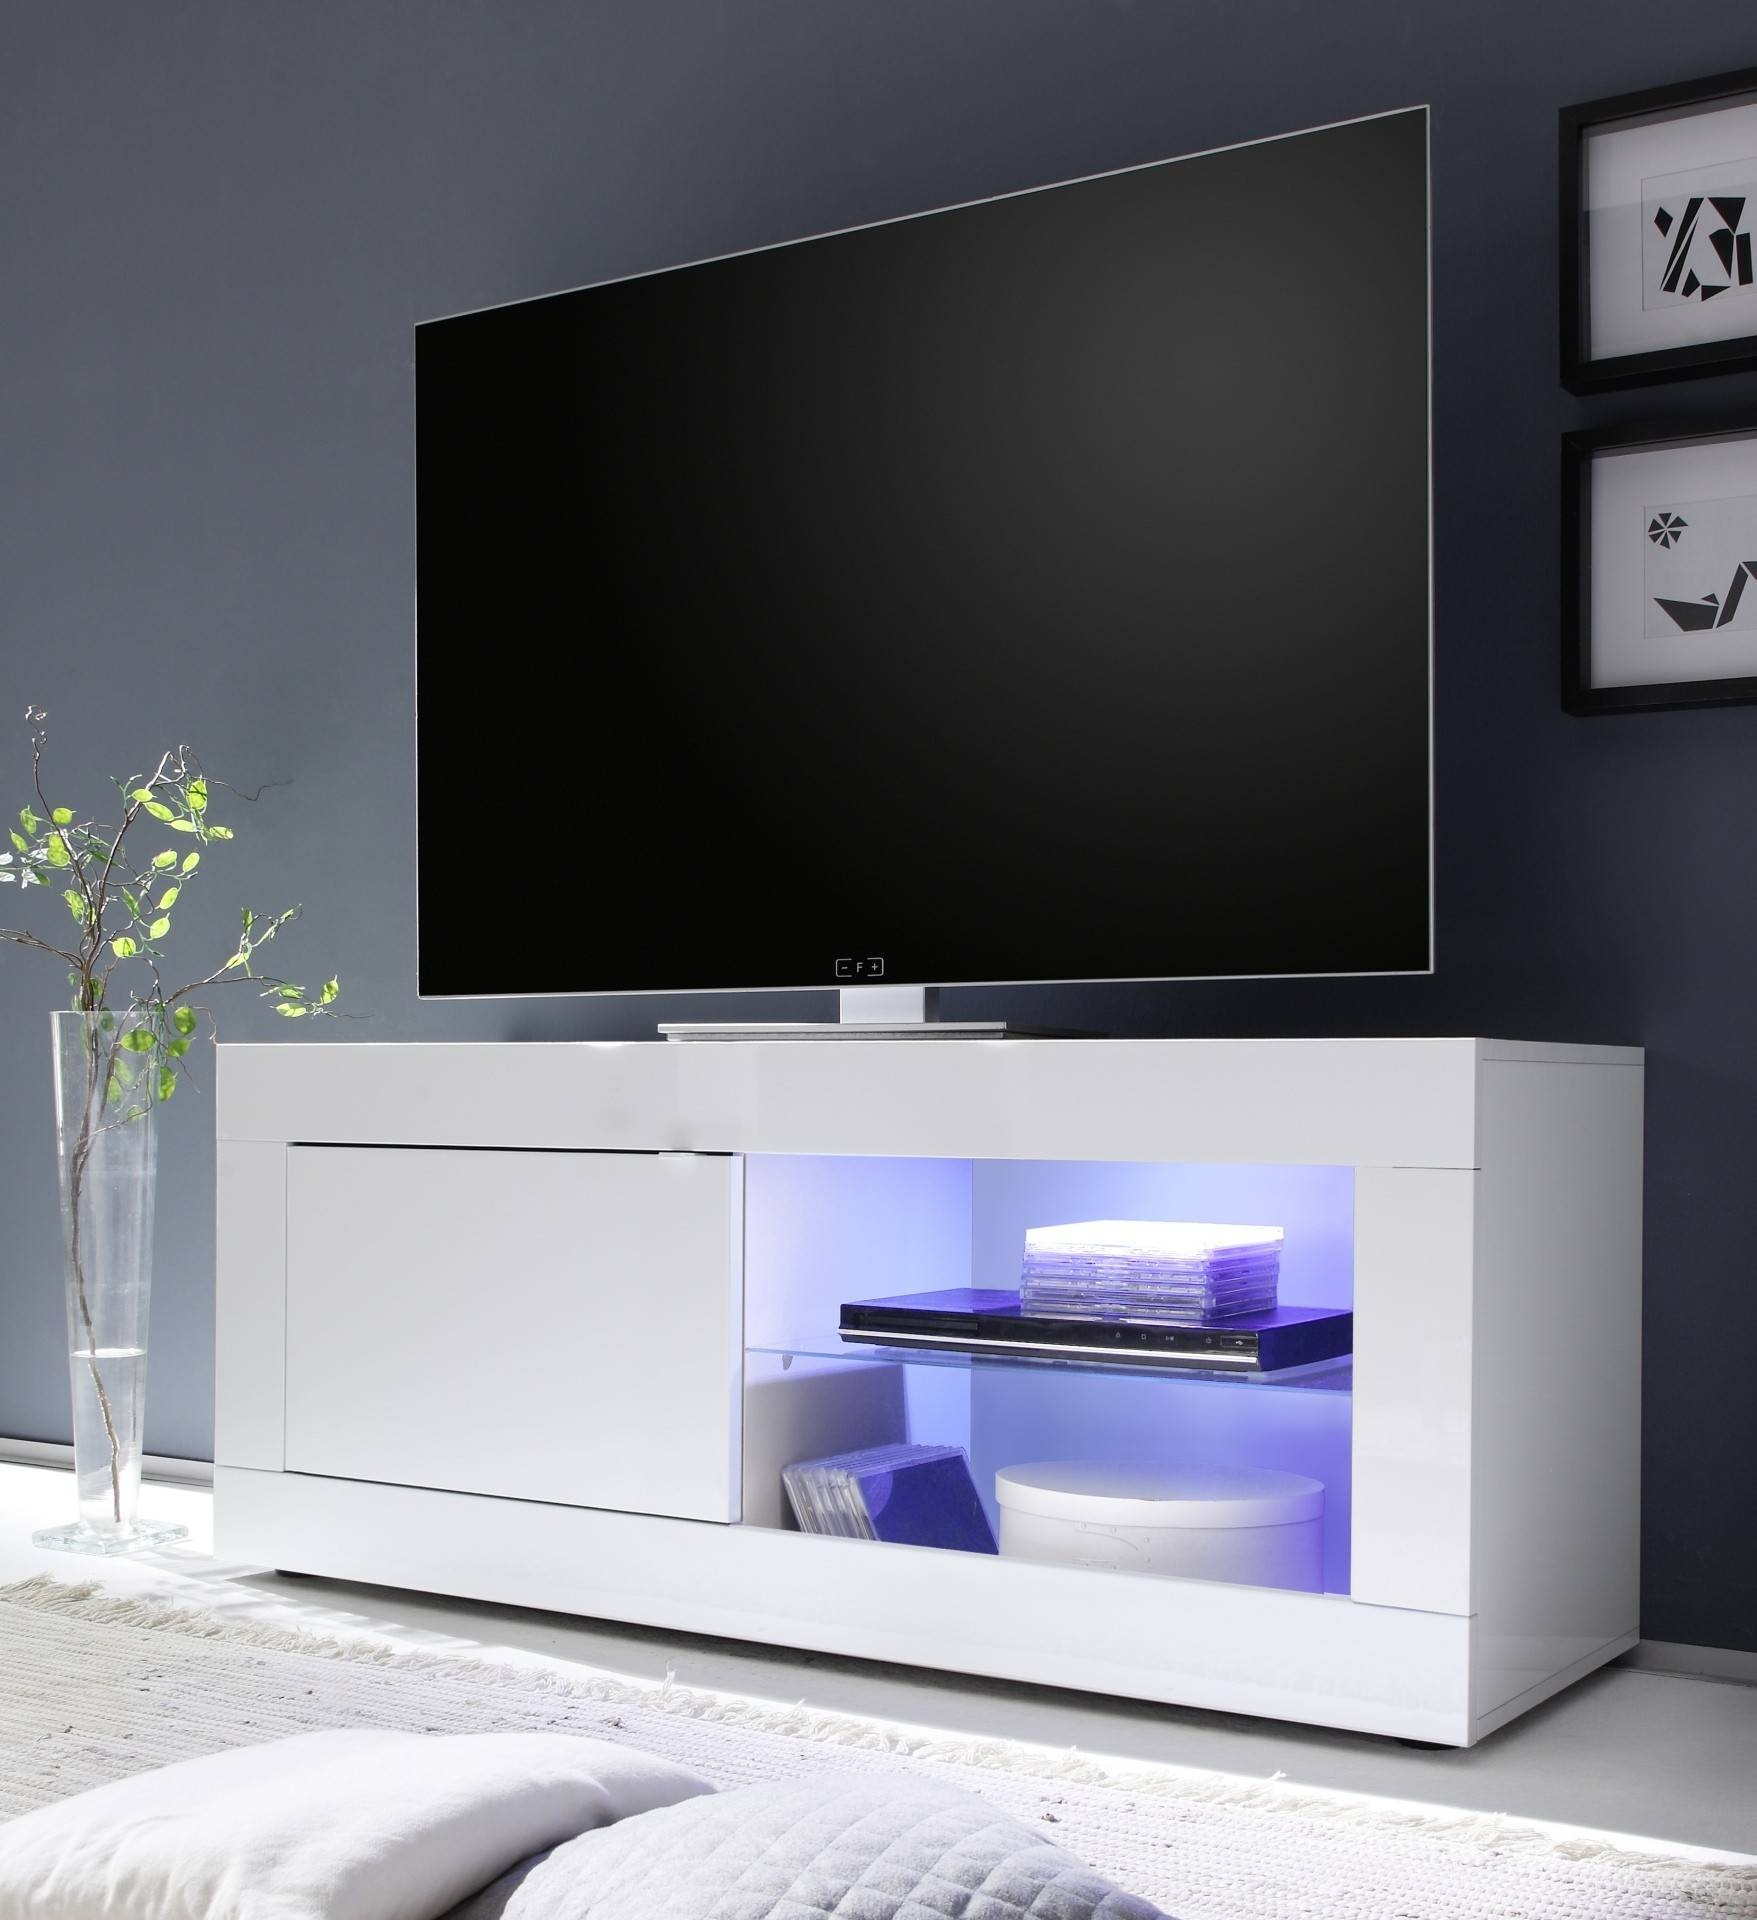 Dolcevita Gloss Tv Stand - Tv Stands - Sena Home Furniture within Gloss White Tv Stands (Image 3 of 15)